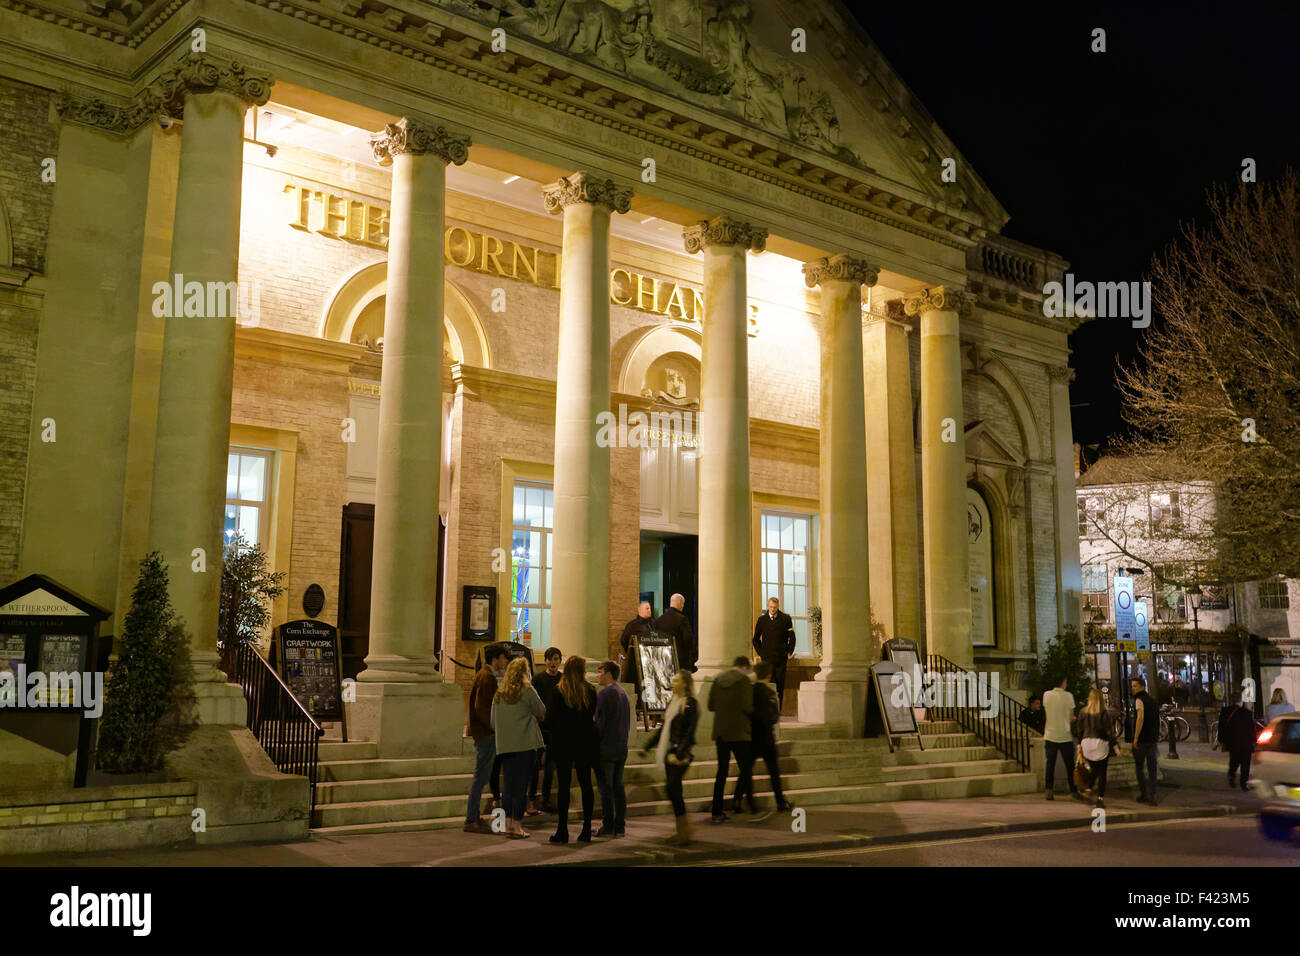 Wetherspoons in the Corn Exchange at Bury St Edmunds, UK - Stock Image